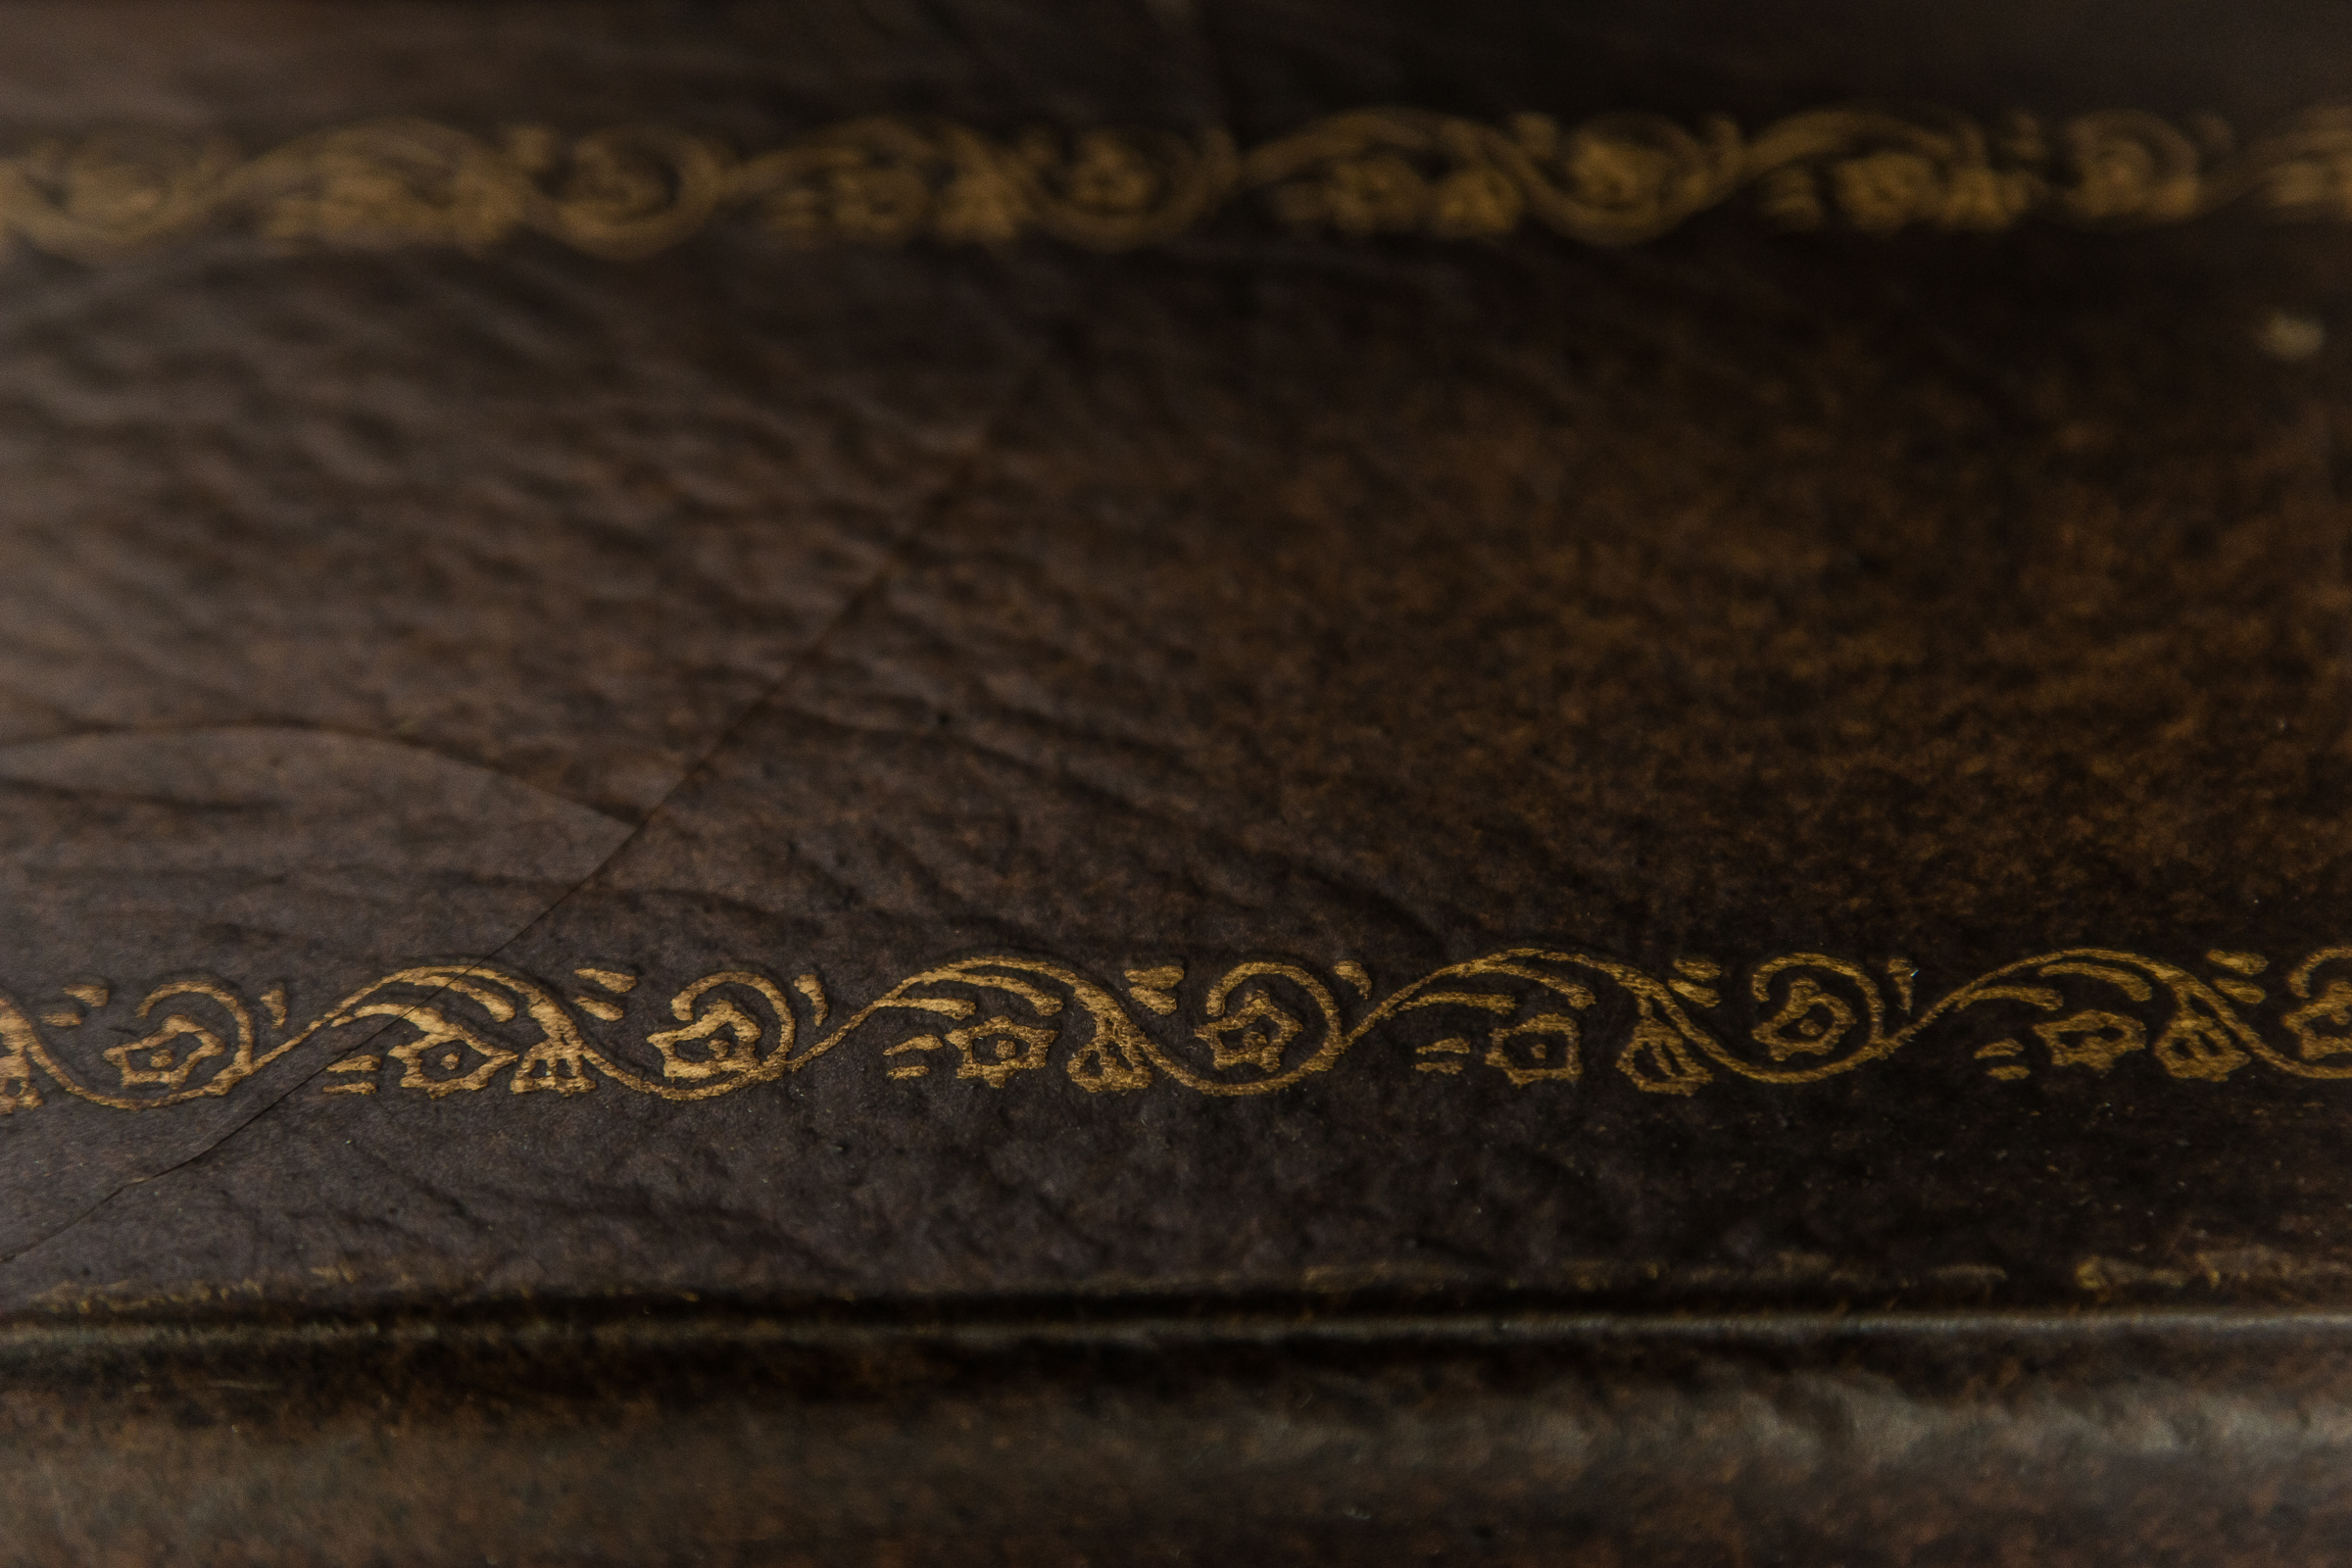 A photo of leather binding